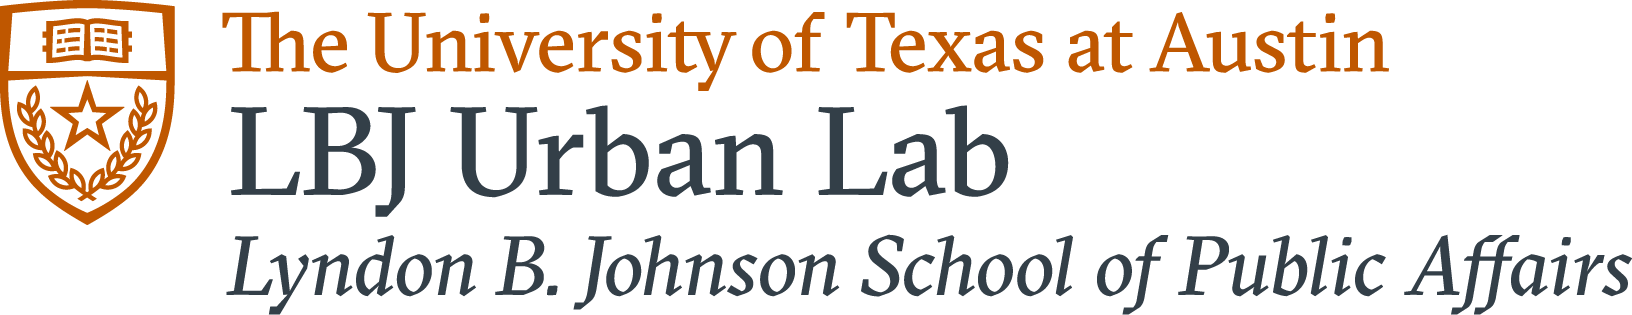 LBJ Urban Lab logo